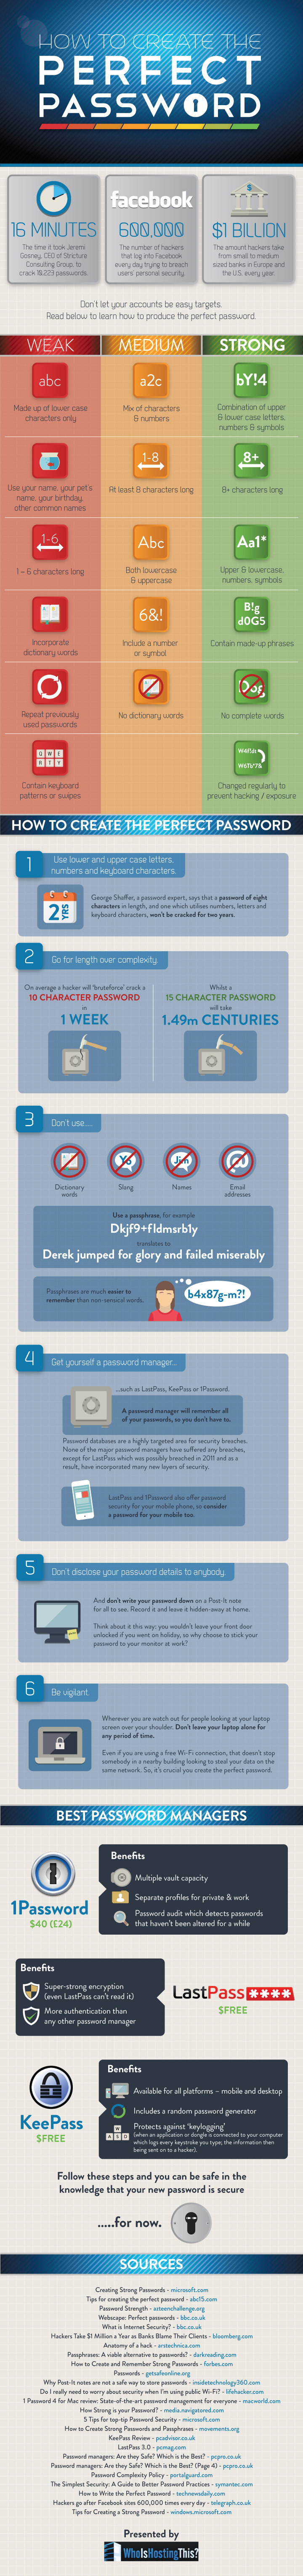 infografico-how-create-super-stong-password